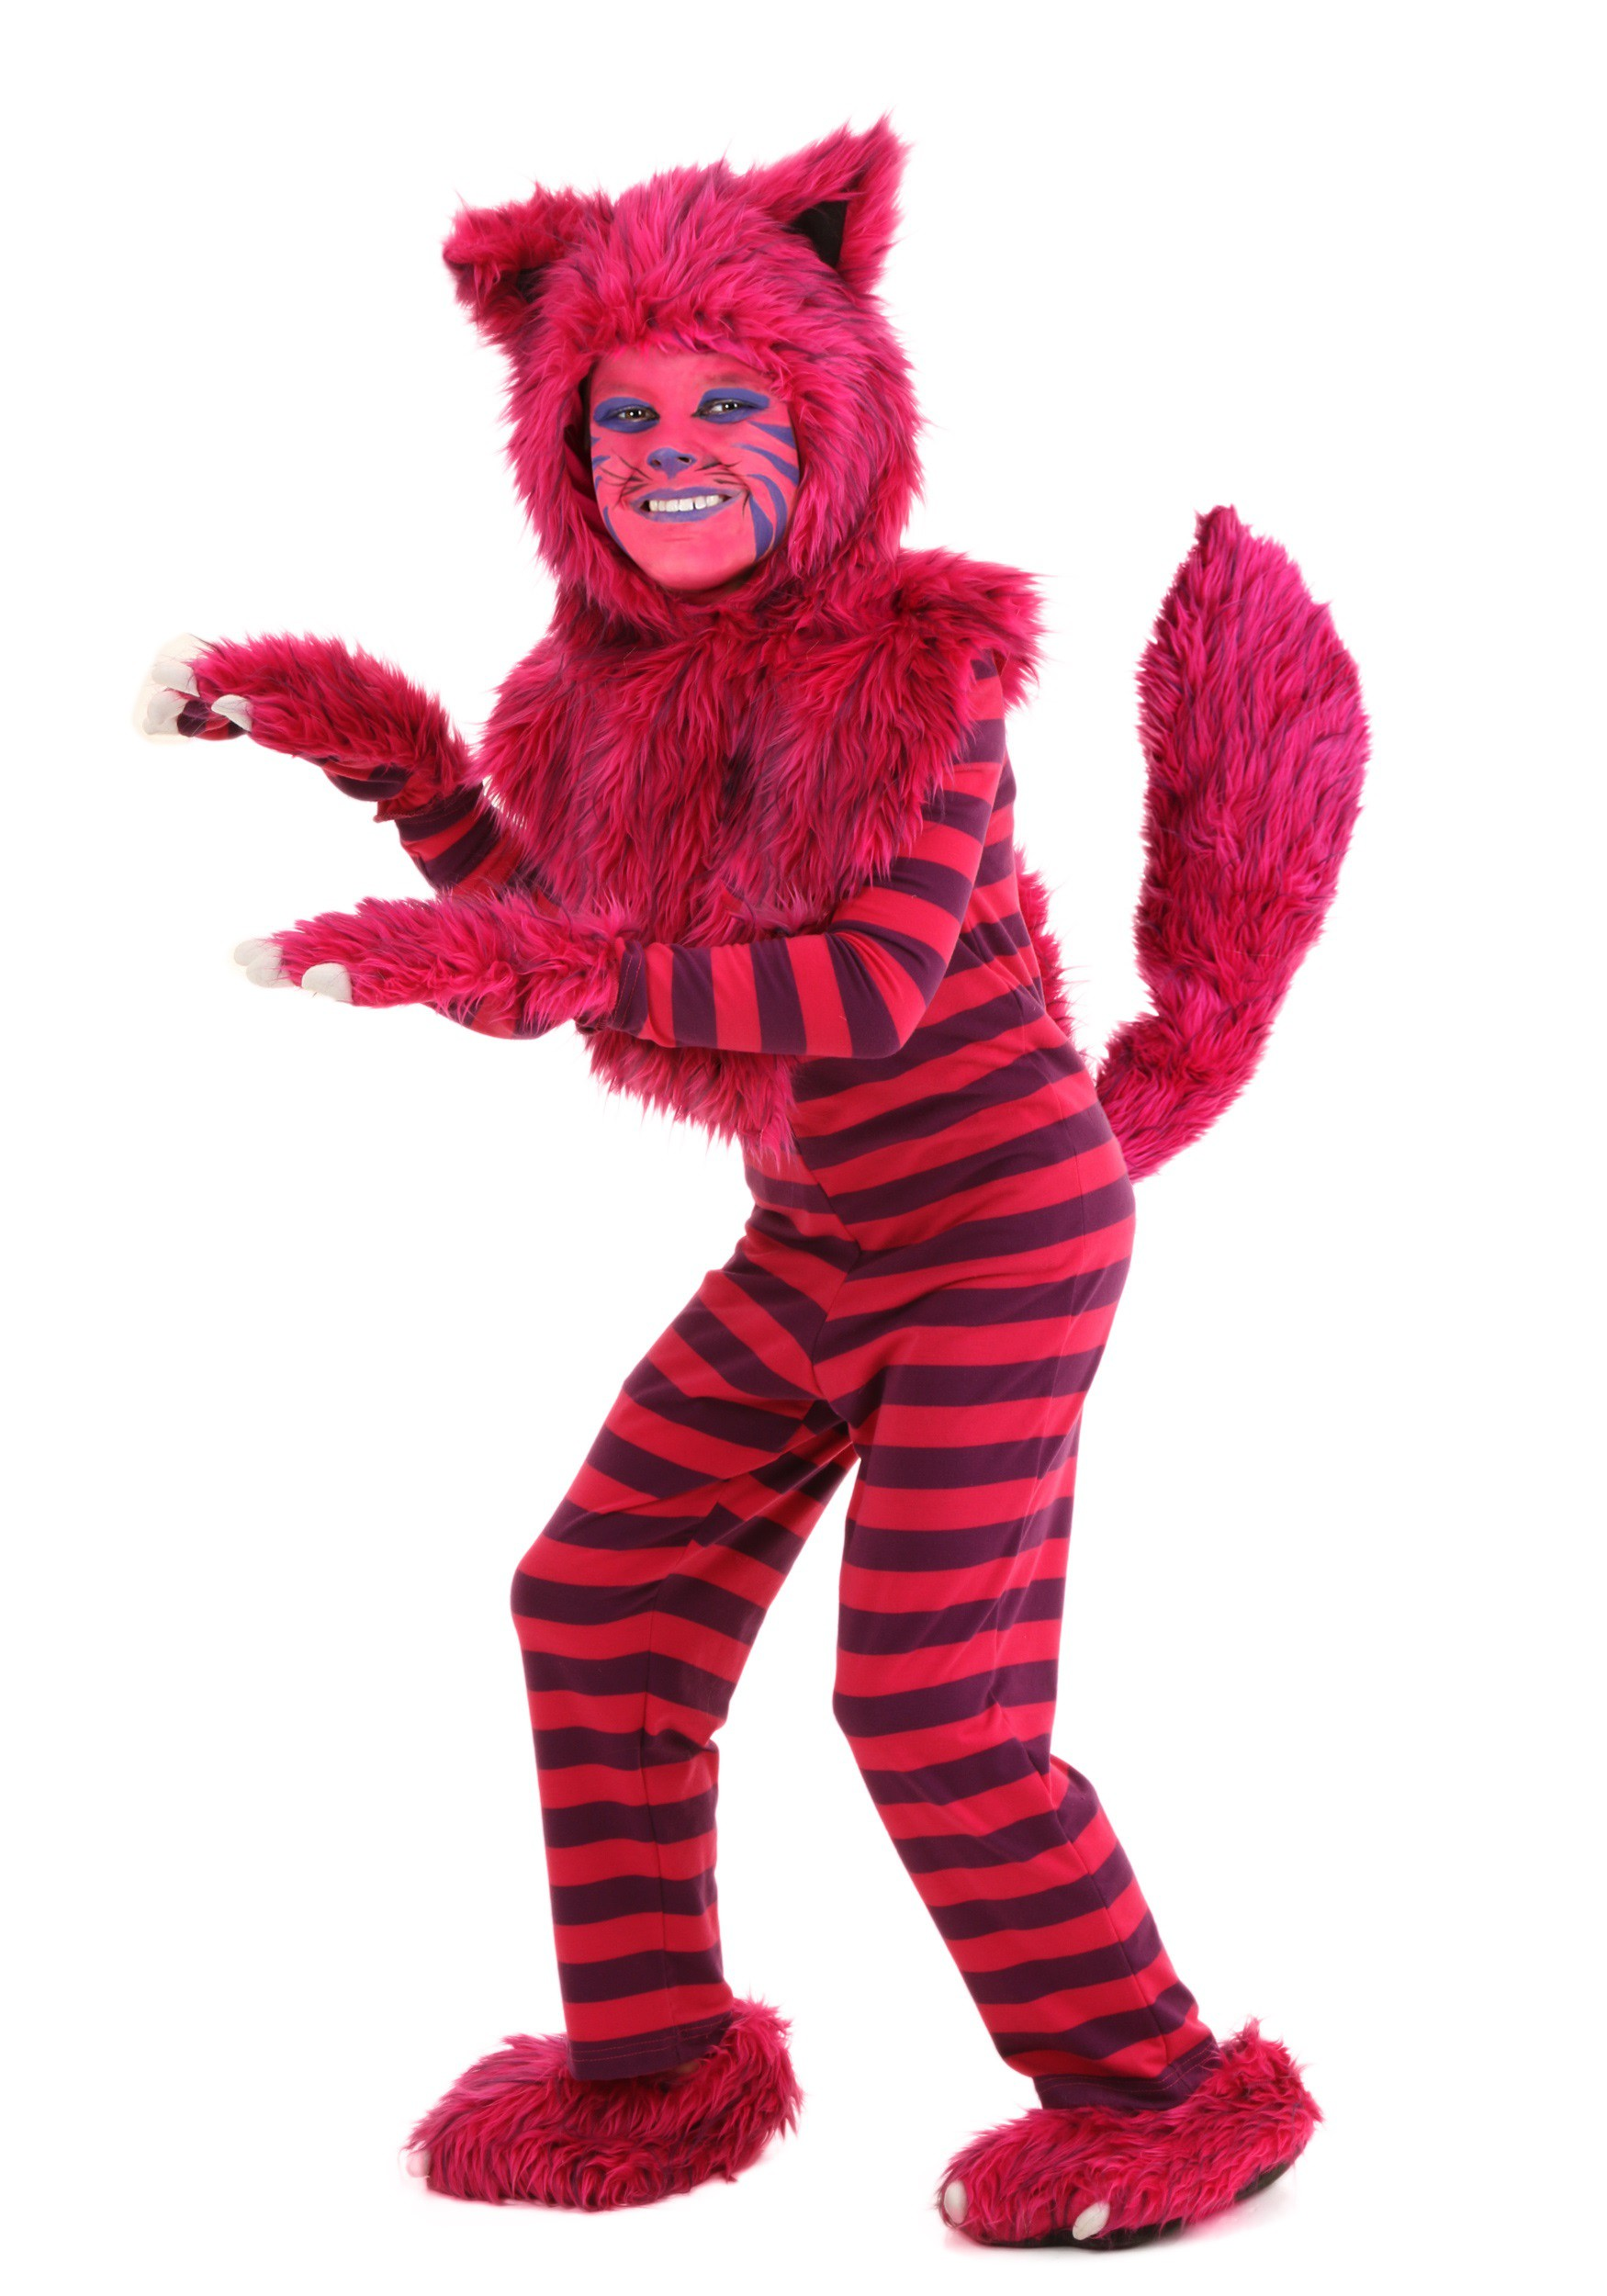 Deluxe Cheshire Cat Chidrens Costume  sc 1 st  Fun.com & Kids Deluxe Cheshire Cat Costume